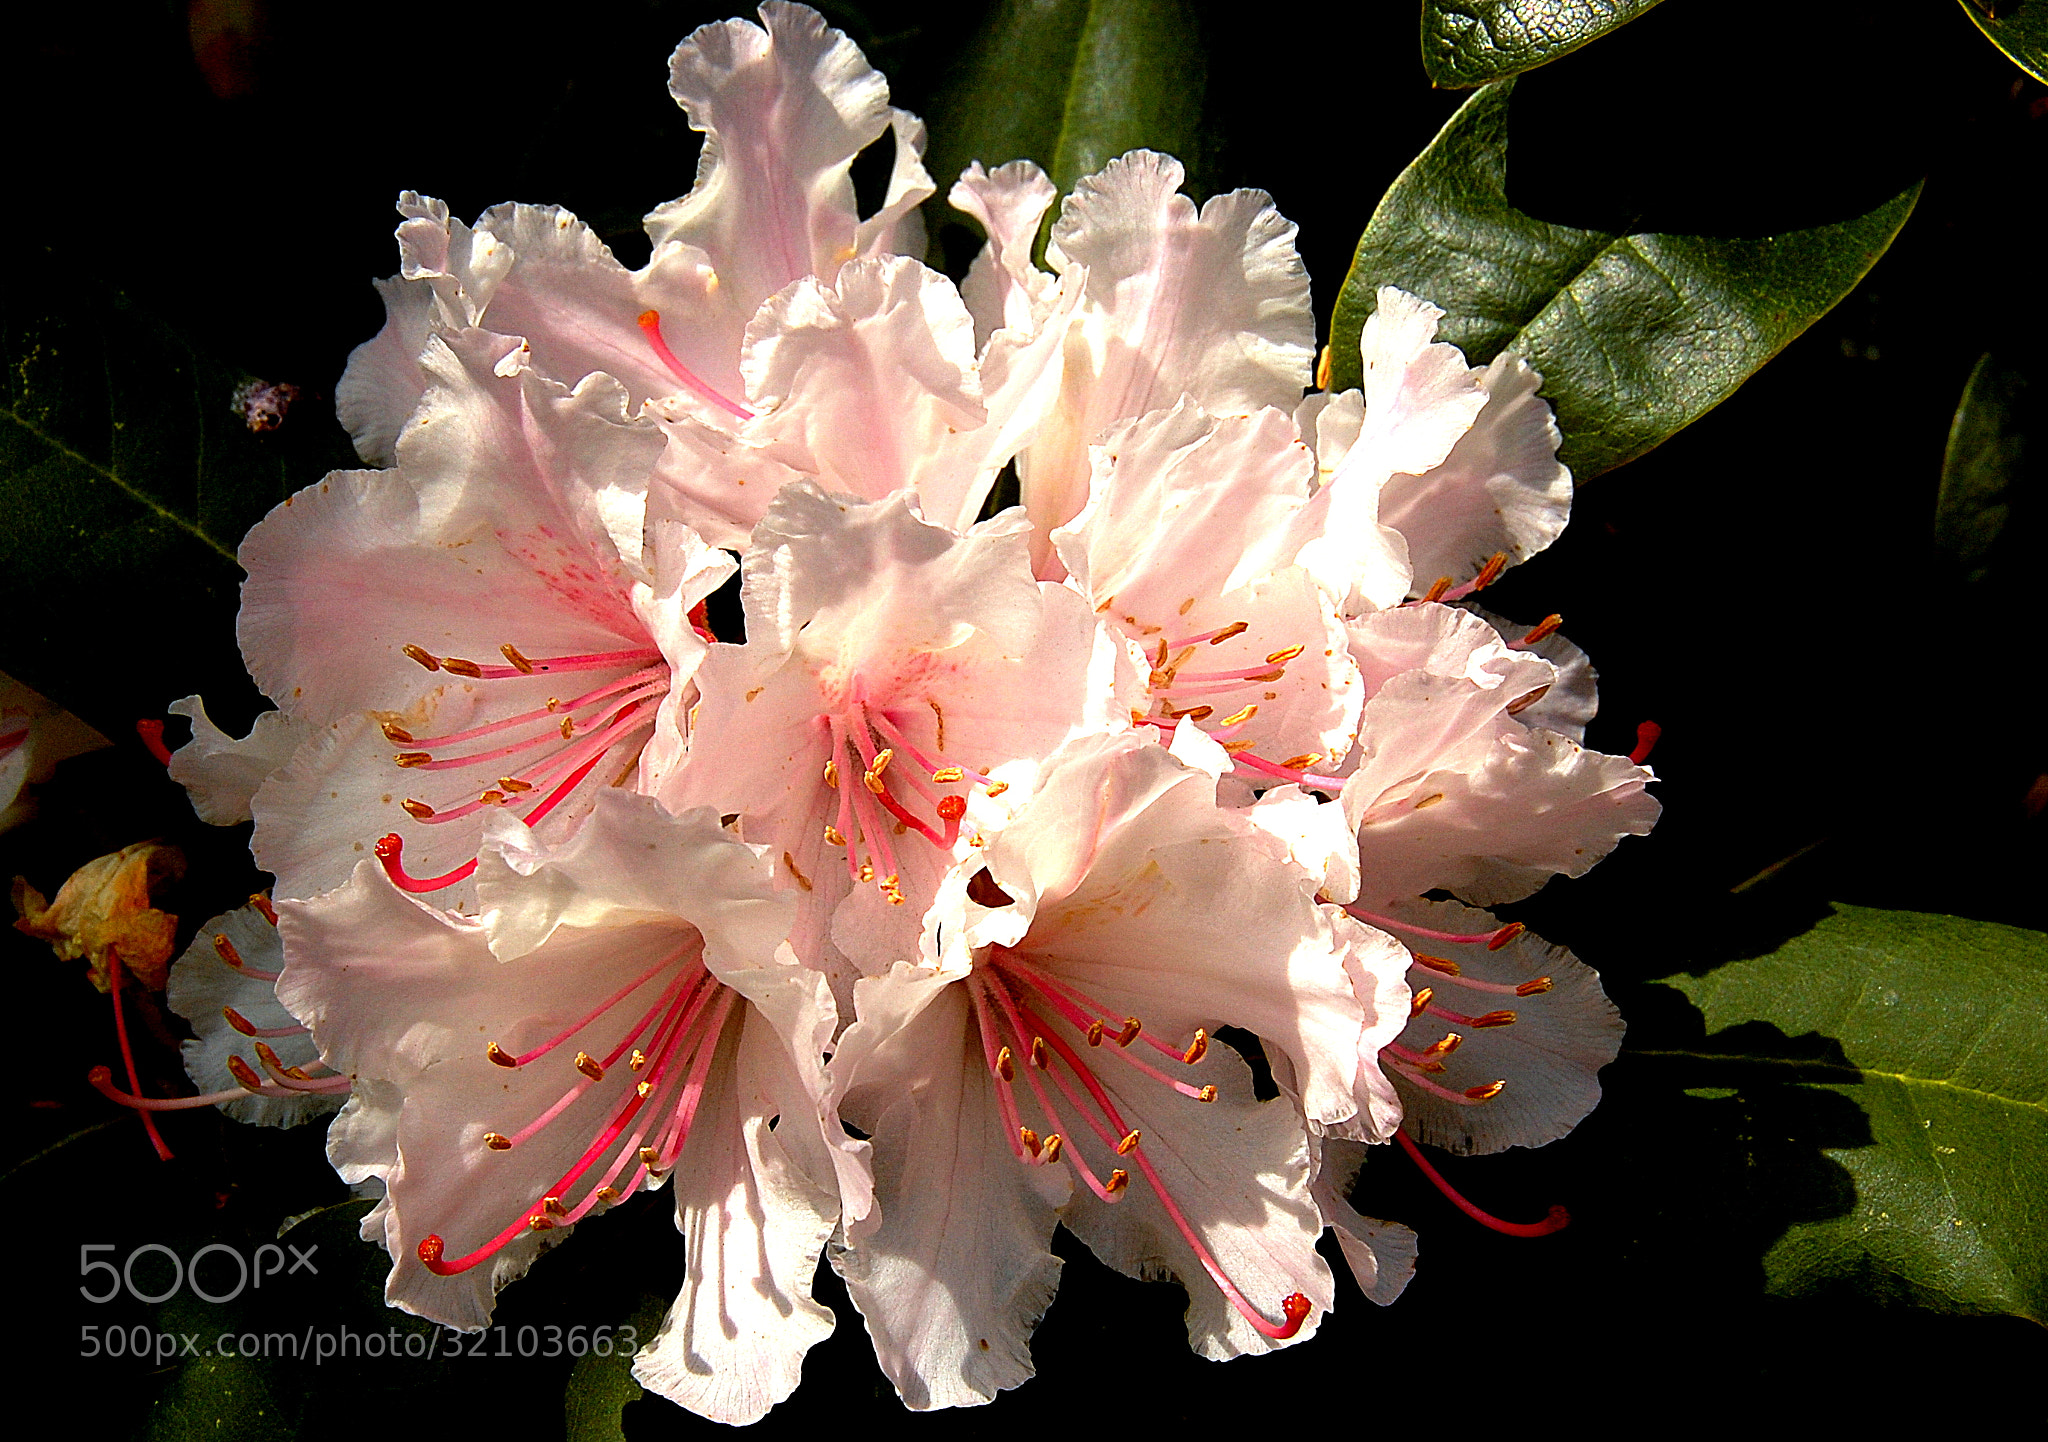 Photograph Rhododendron by Ruud Eelderink on 500px